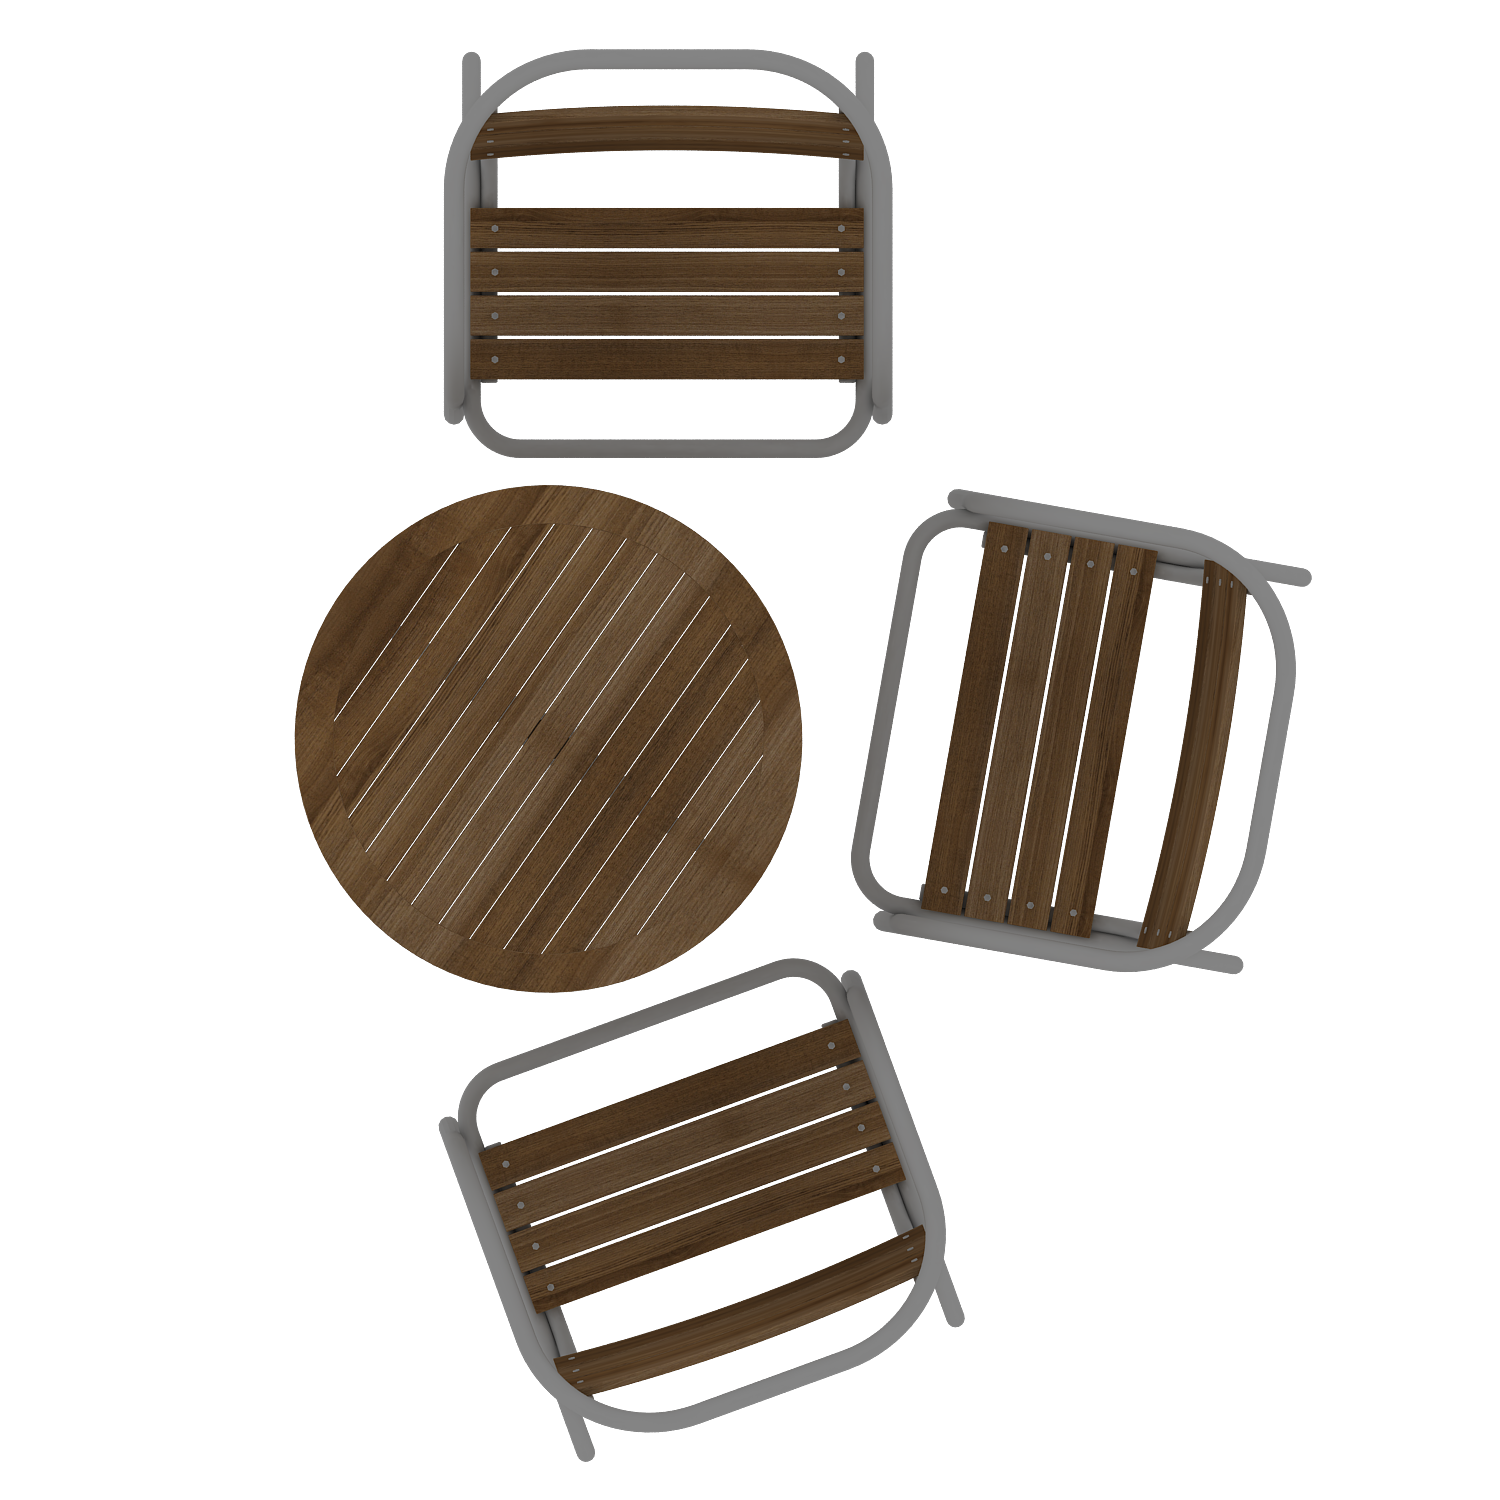 Furniture clipart top view. Http www aidigit com